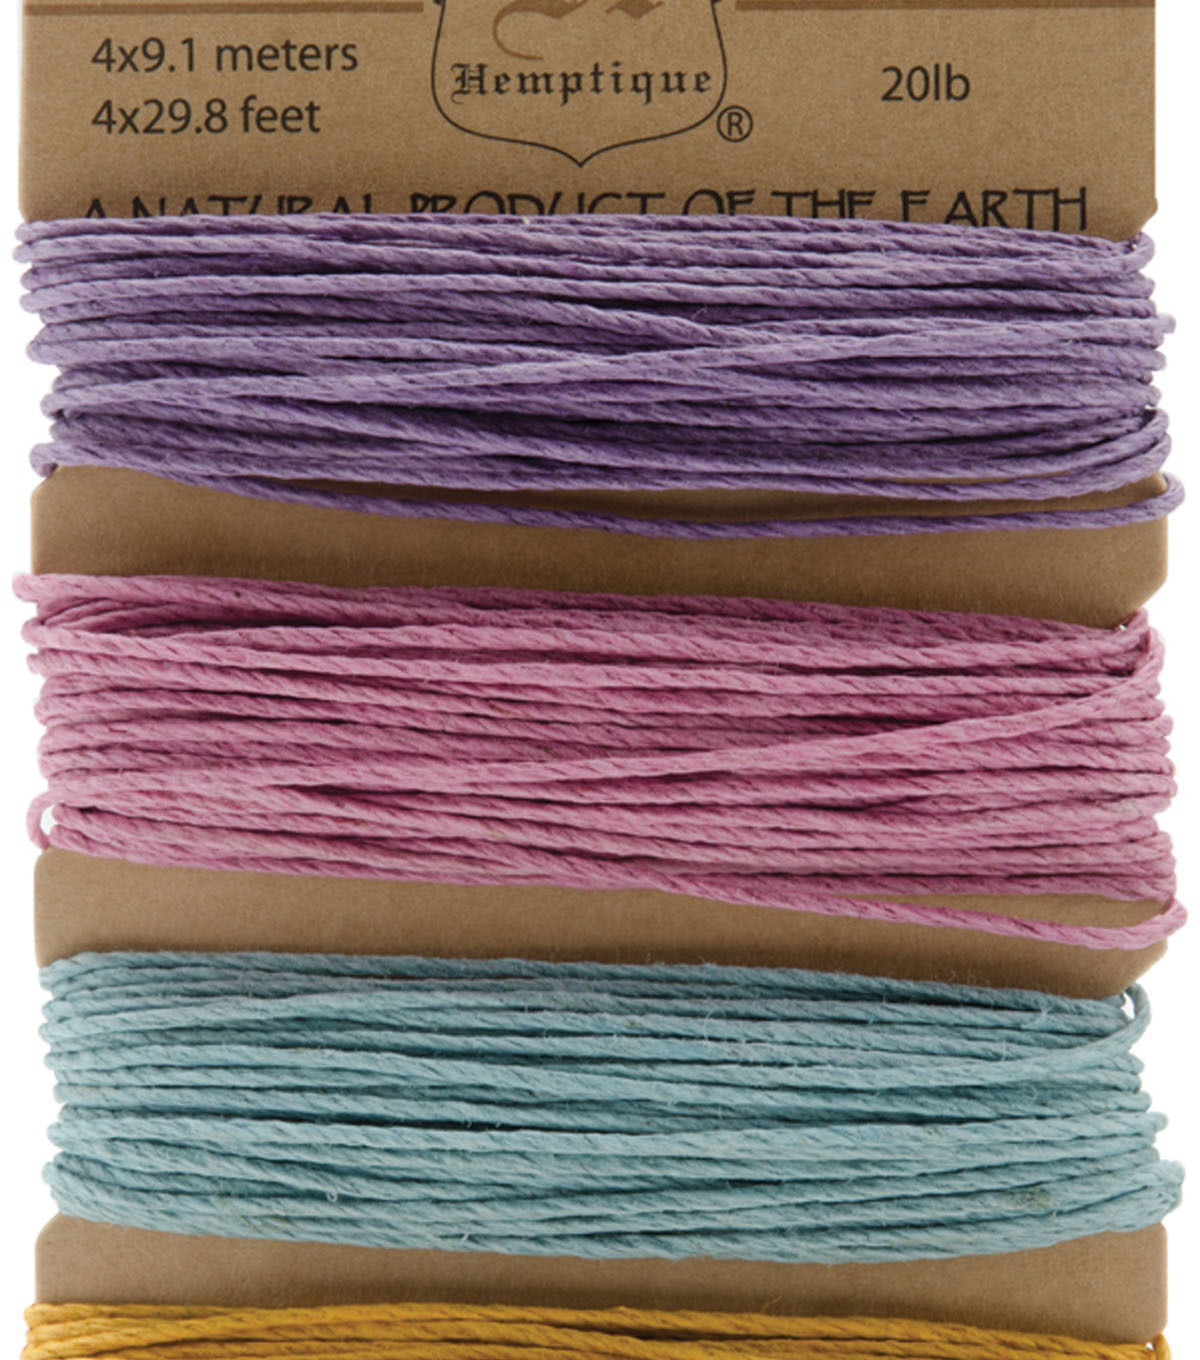 Hemptique #20 120\u0027 Hemp Cord Card-Pastel